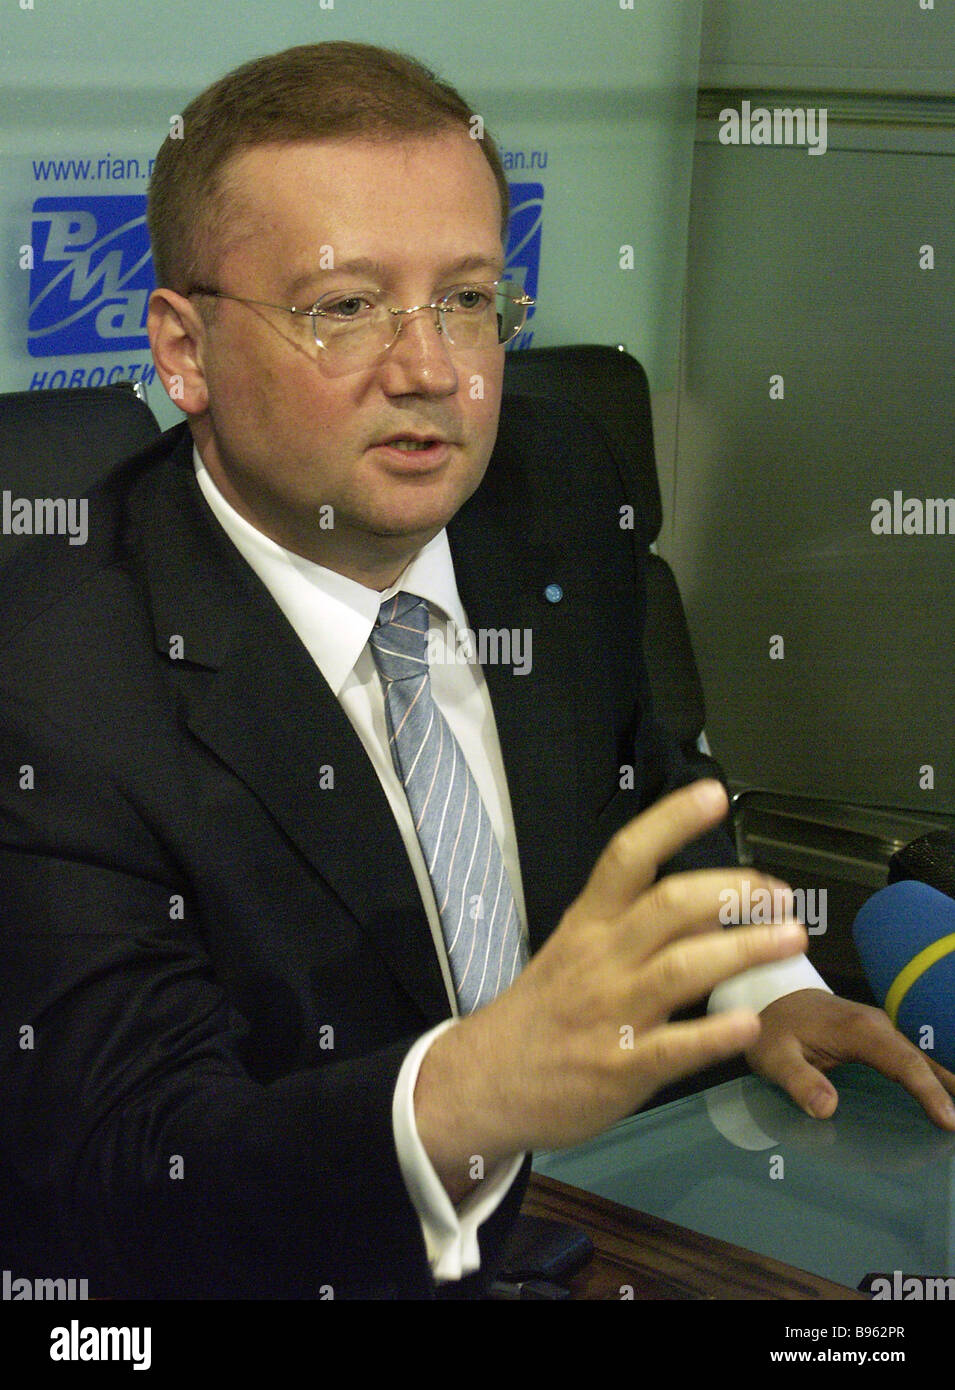 Alexander Yakovenko official spokesman of Russia s Ministry of Foreign Affairs addresses a RIA Novosti news conference - Stock Image